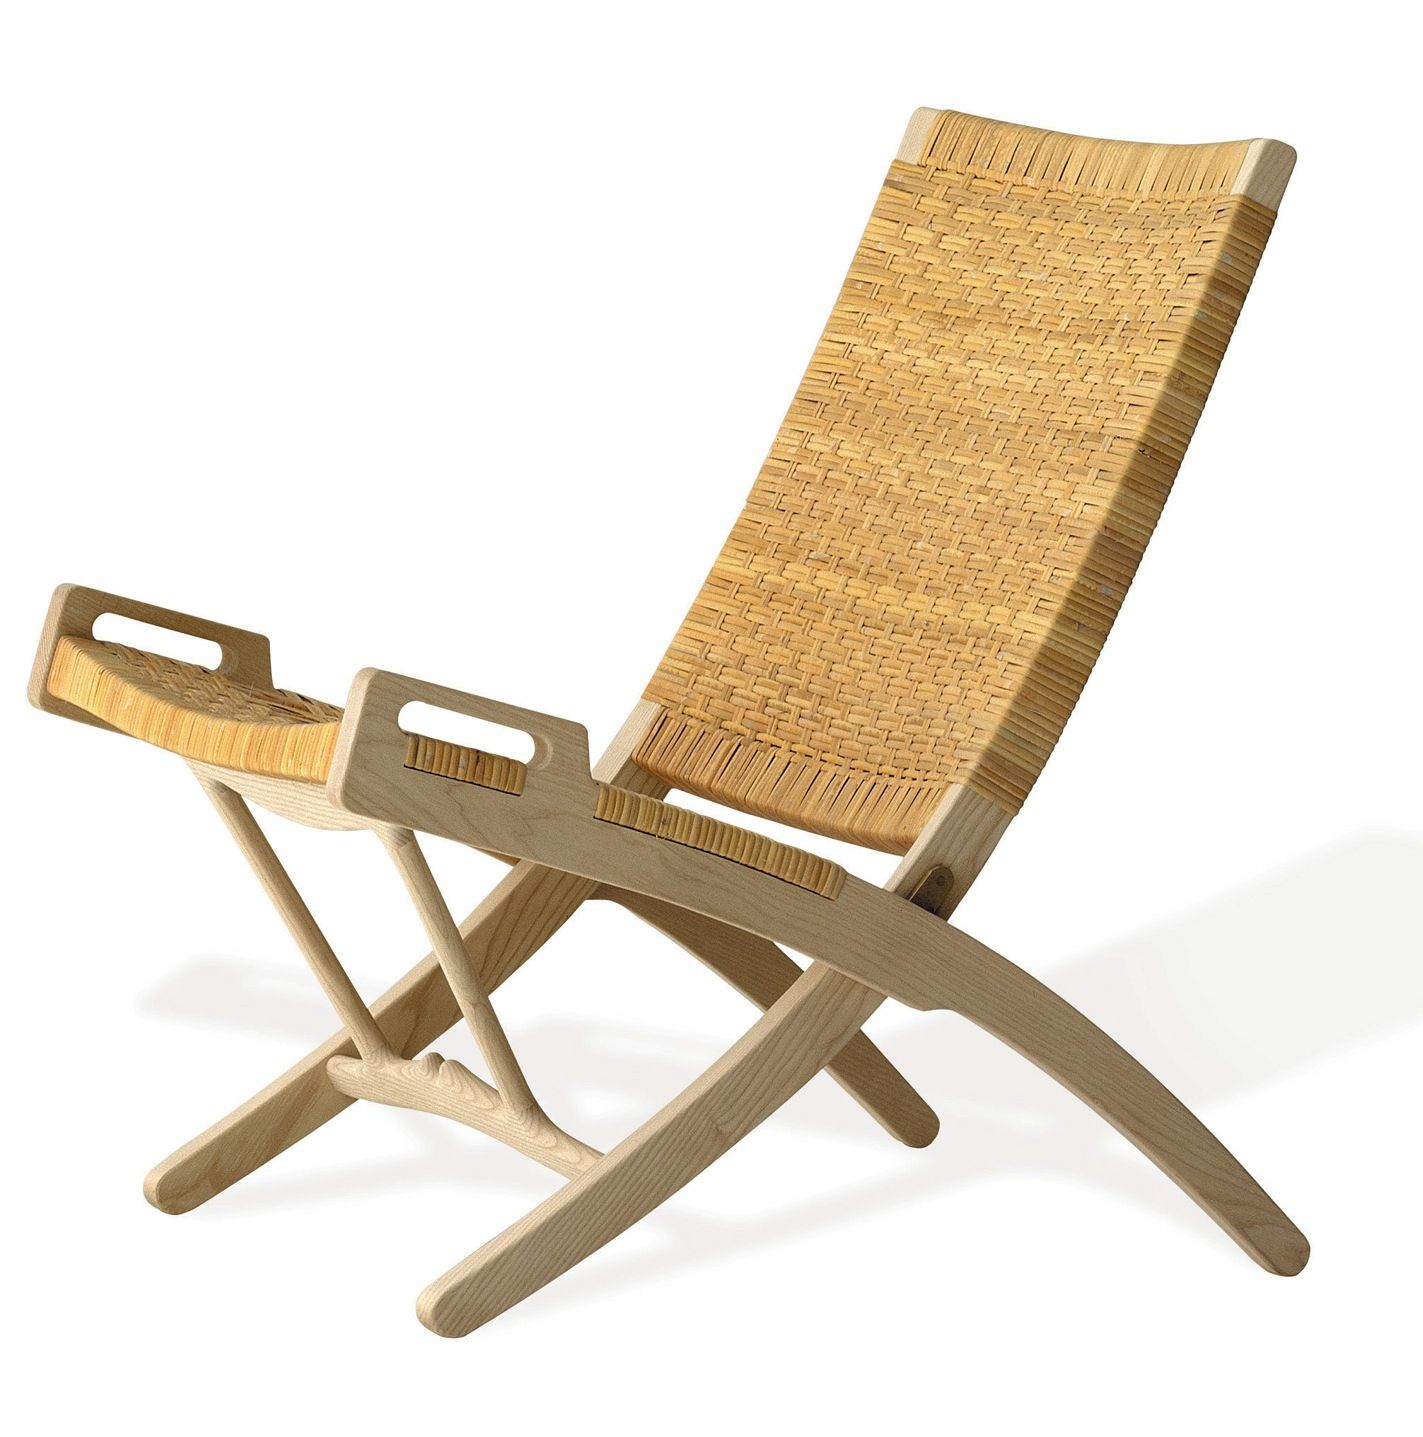 The Beautiful Pp512 Folding Chair By Danish Designer Hans